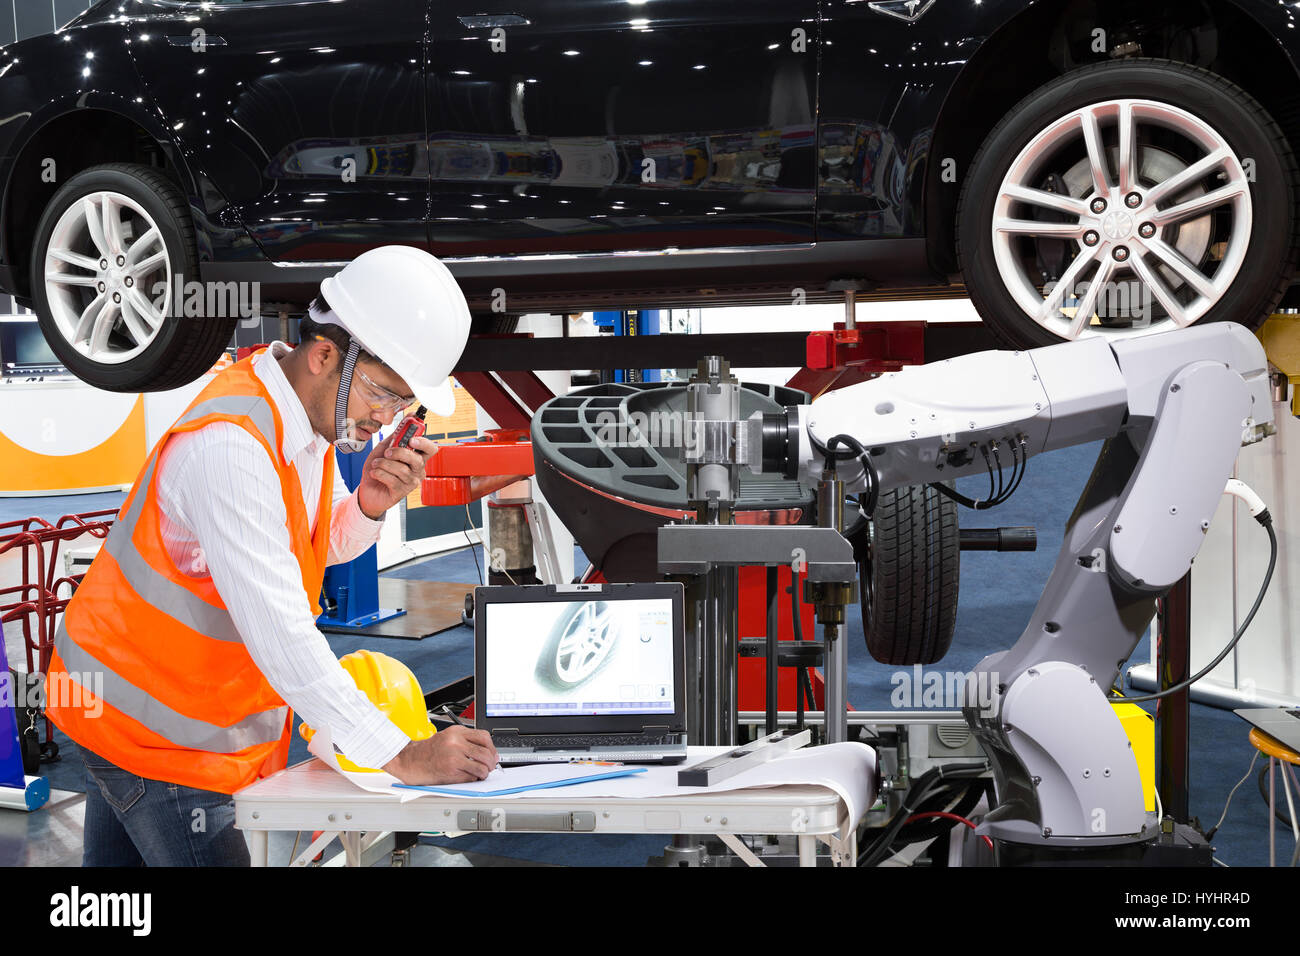 Automotive engineer with assistance robotic inspect modern car, Industry 4.0 concept Stock Photo